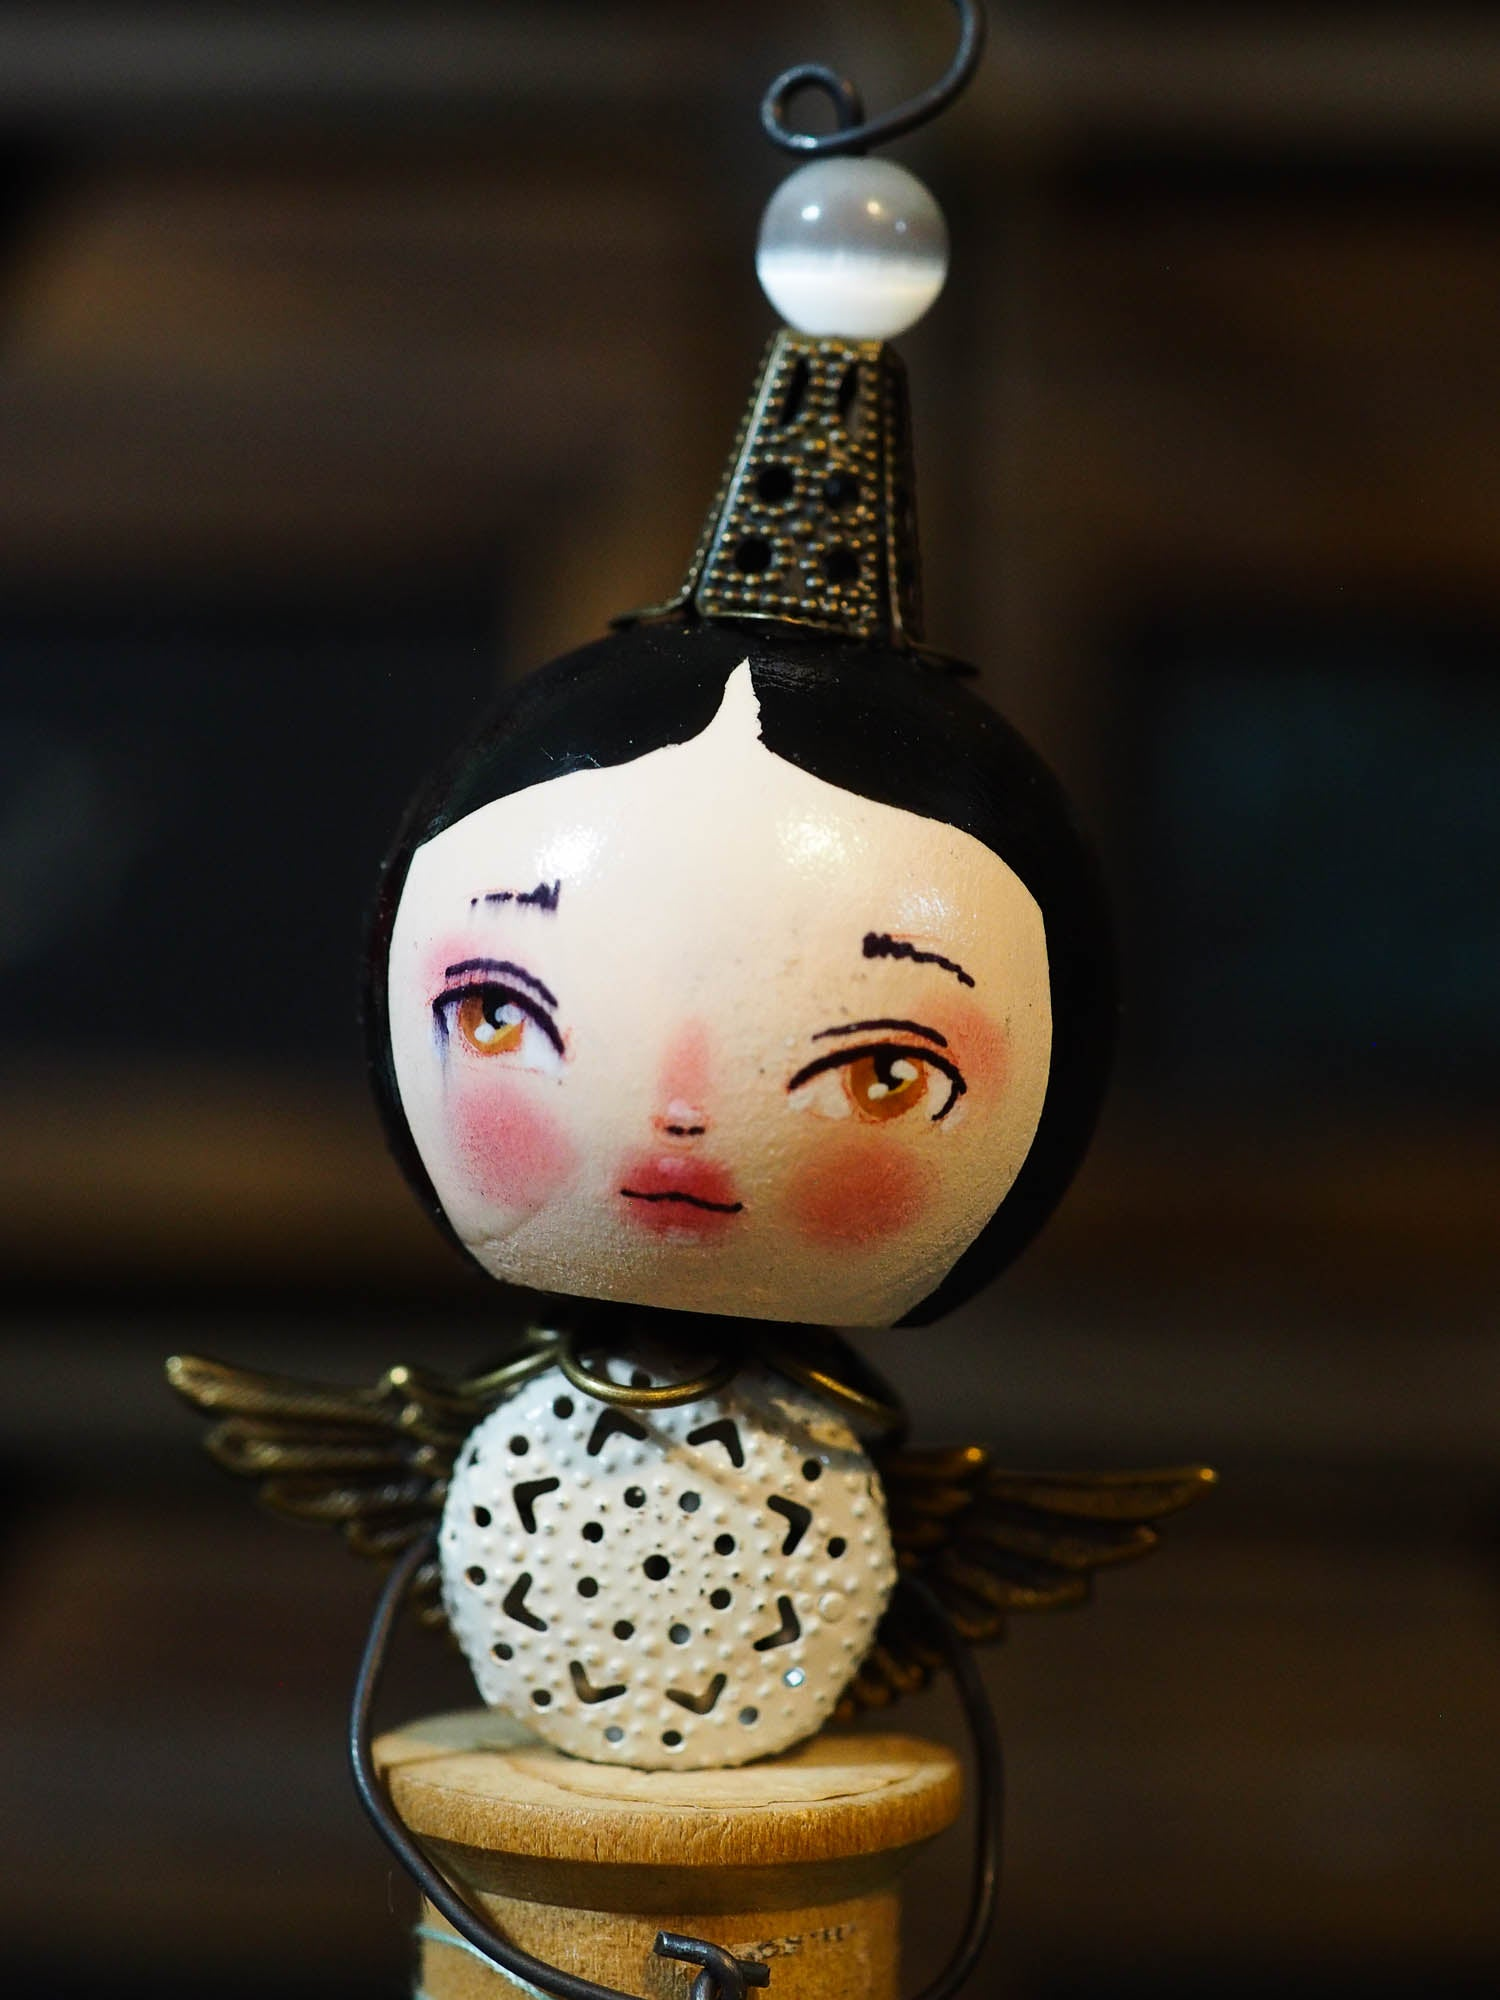 ANGEL No. 6 - An original handmade Christmas tree ornament by Danita, Original Art by Danita Art